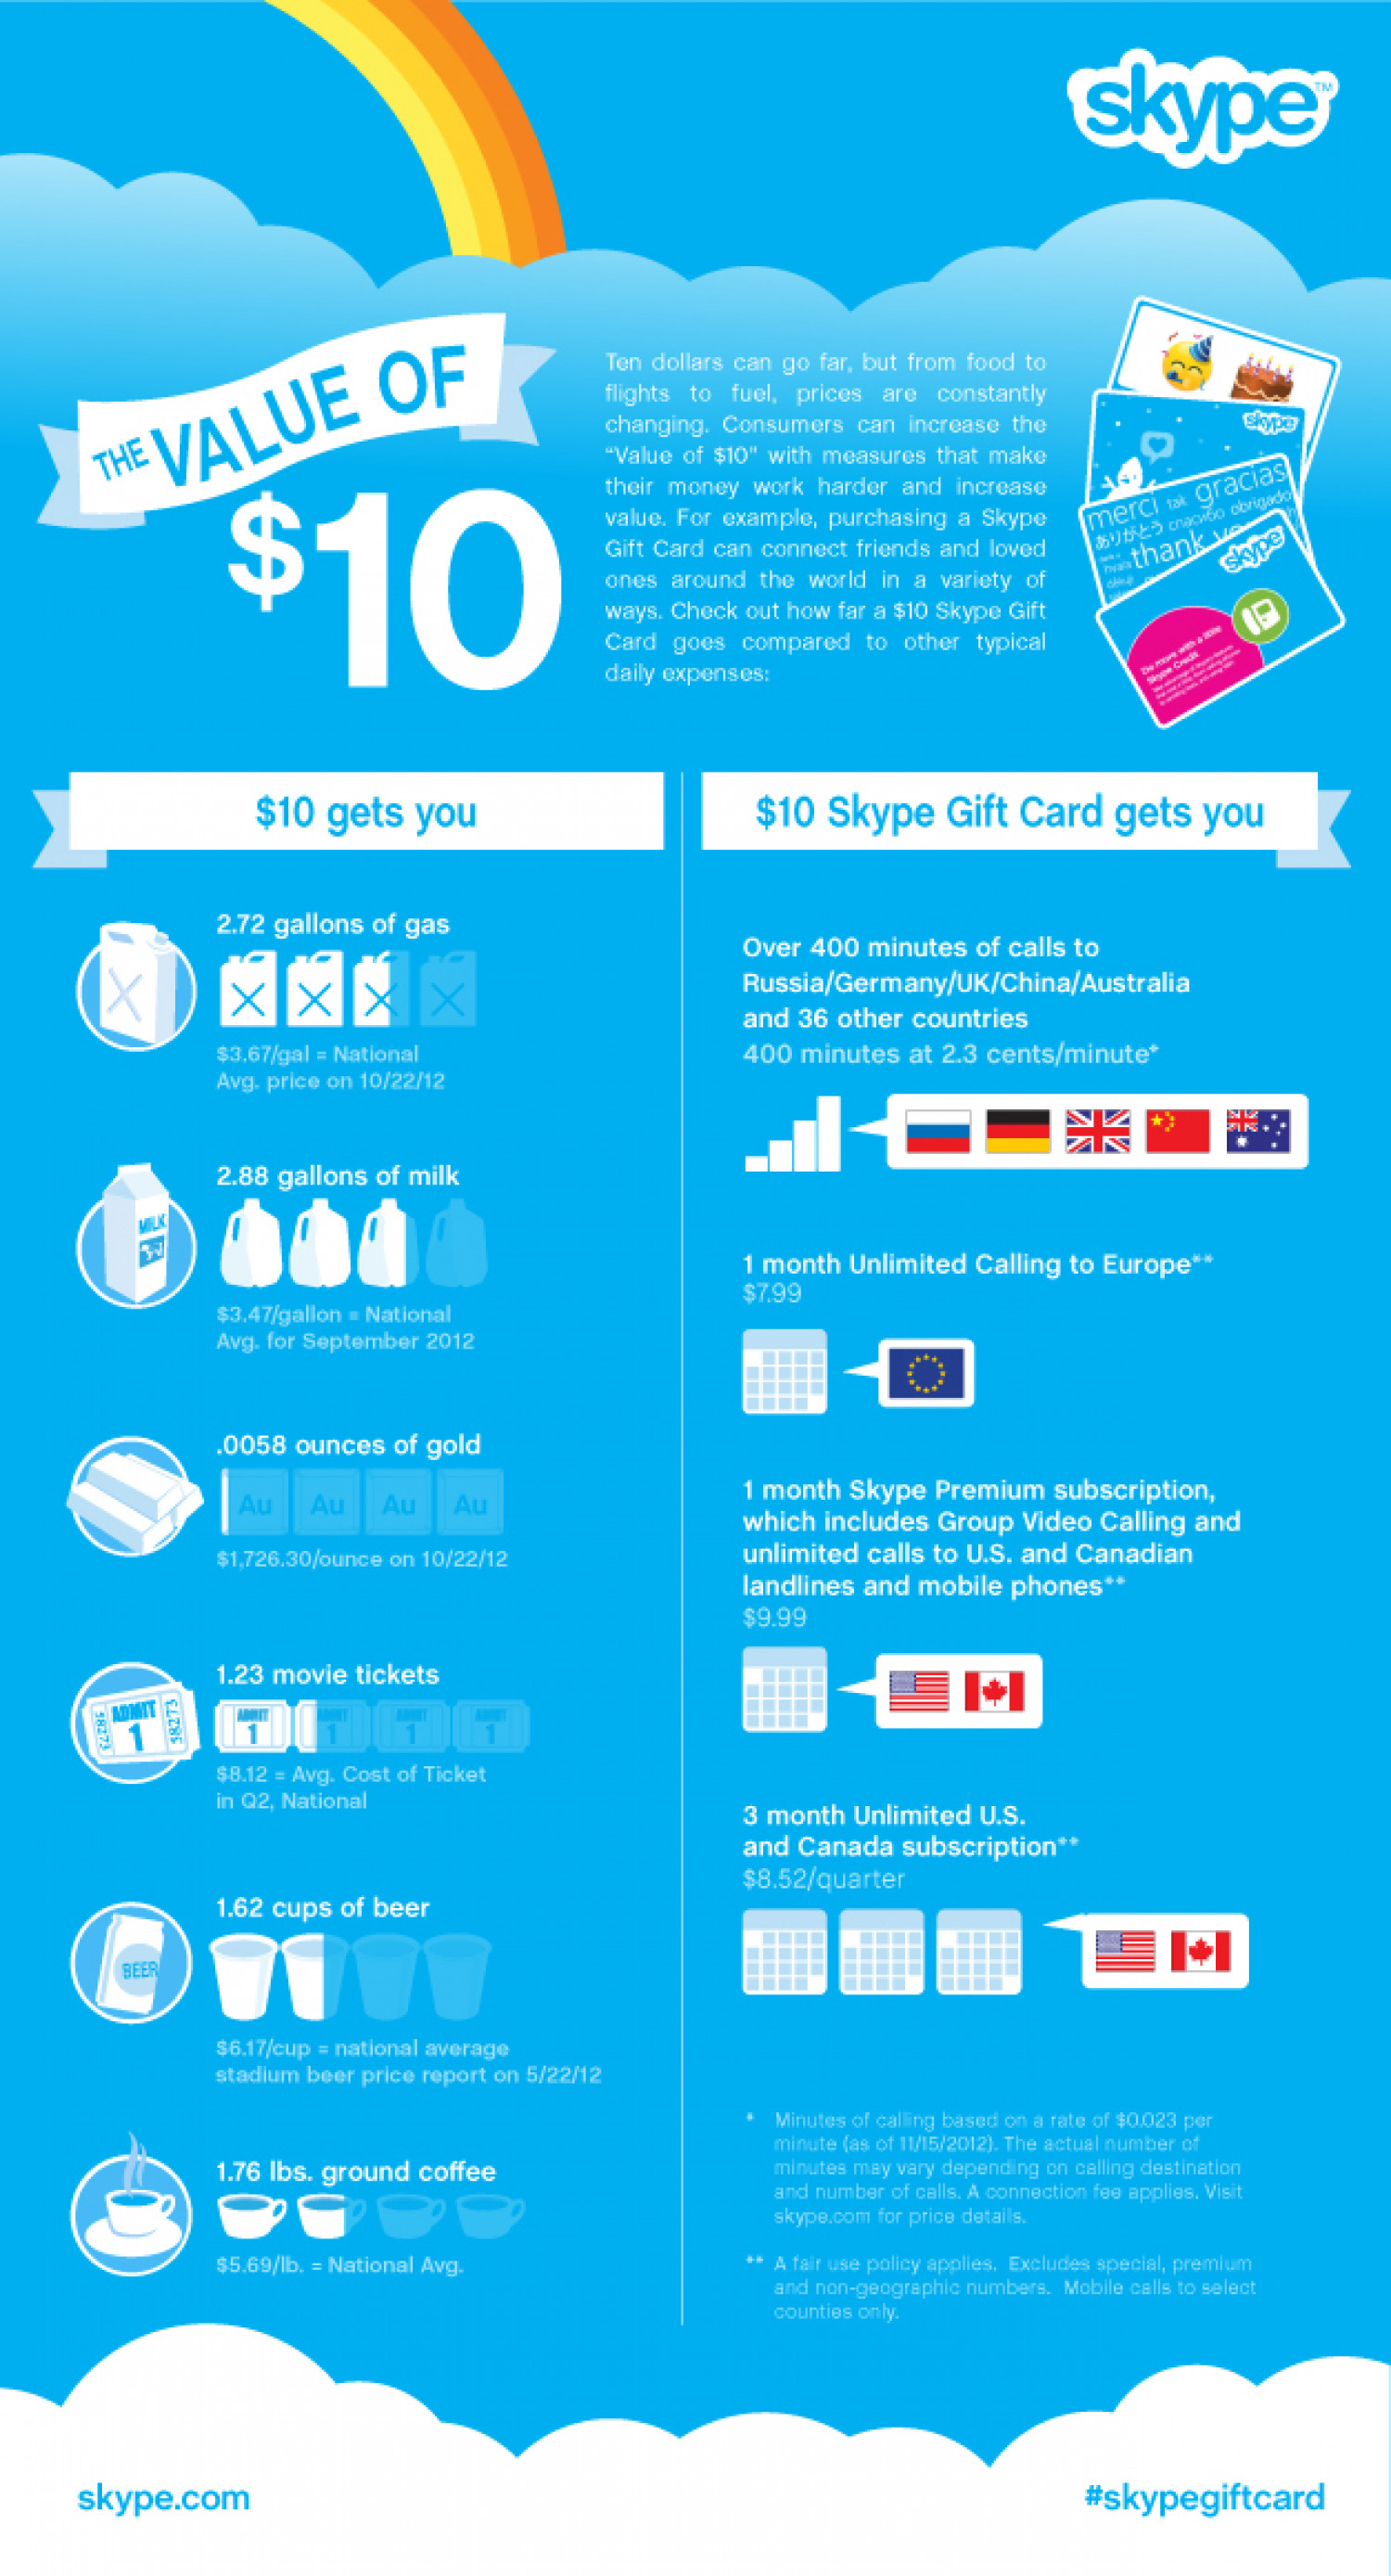 The Value of $10 Infographic